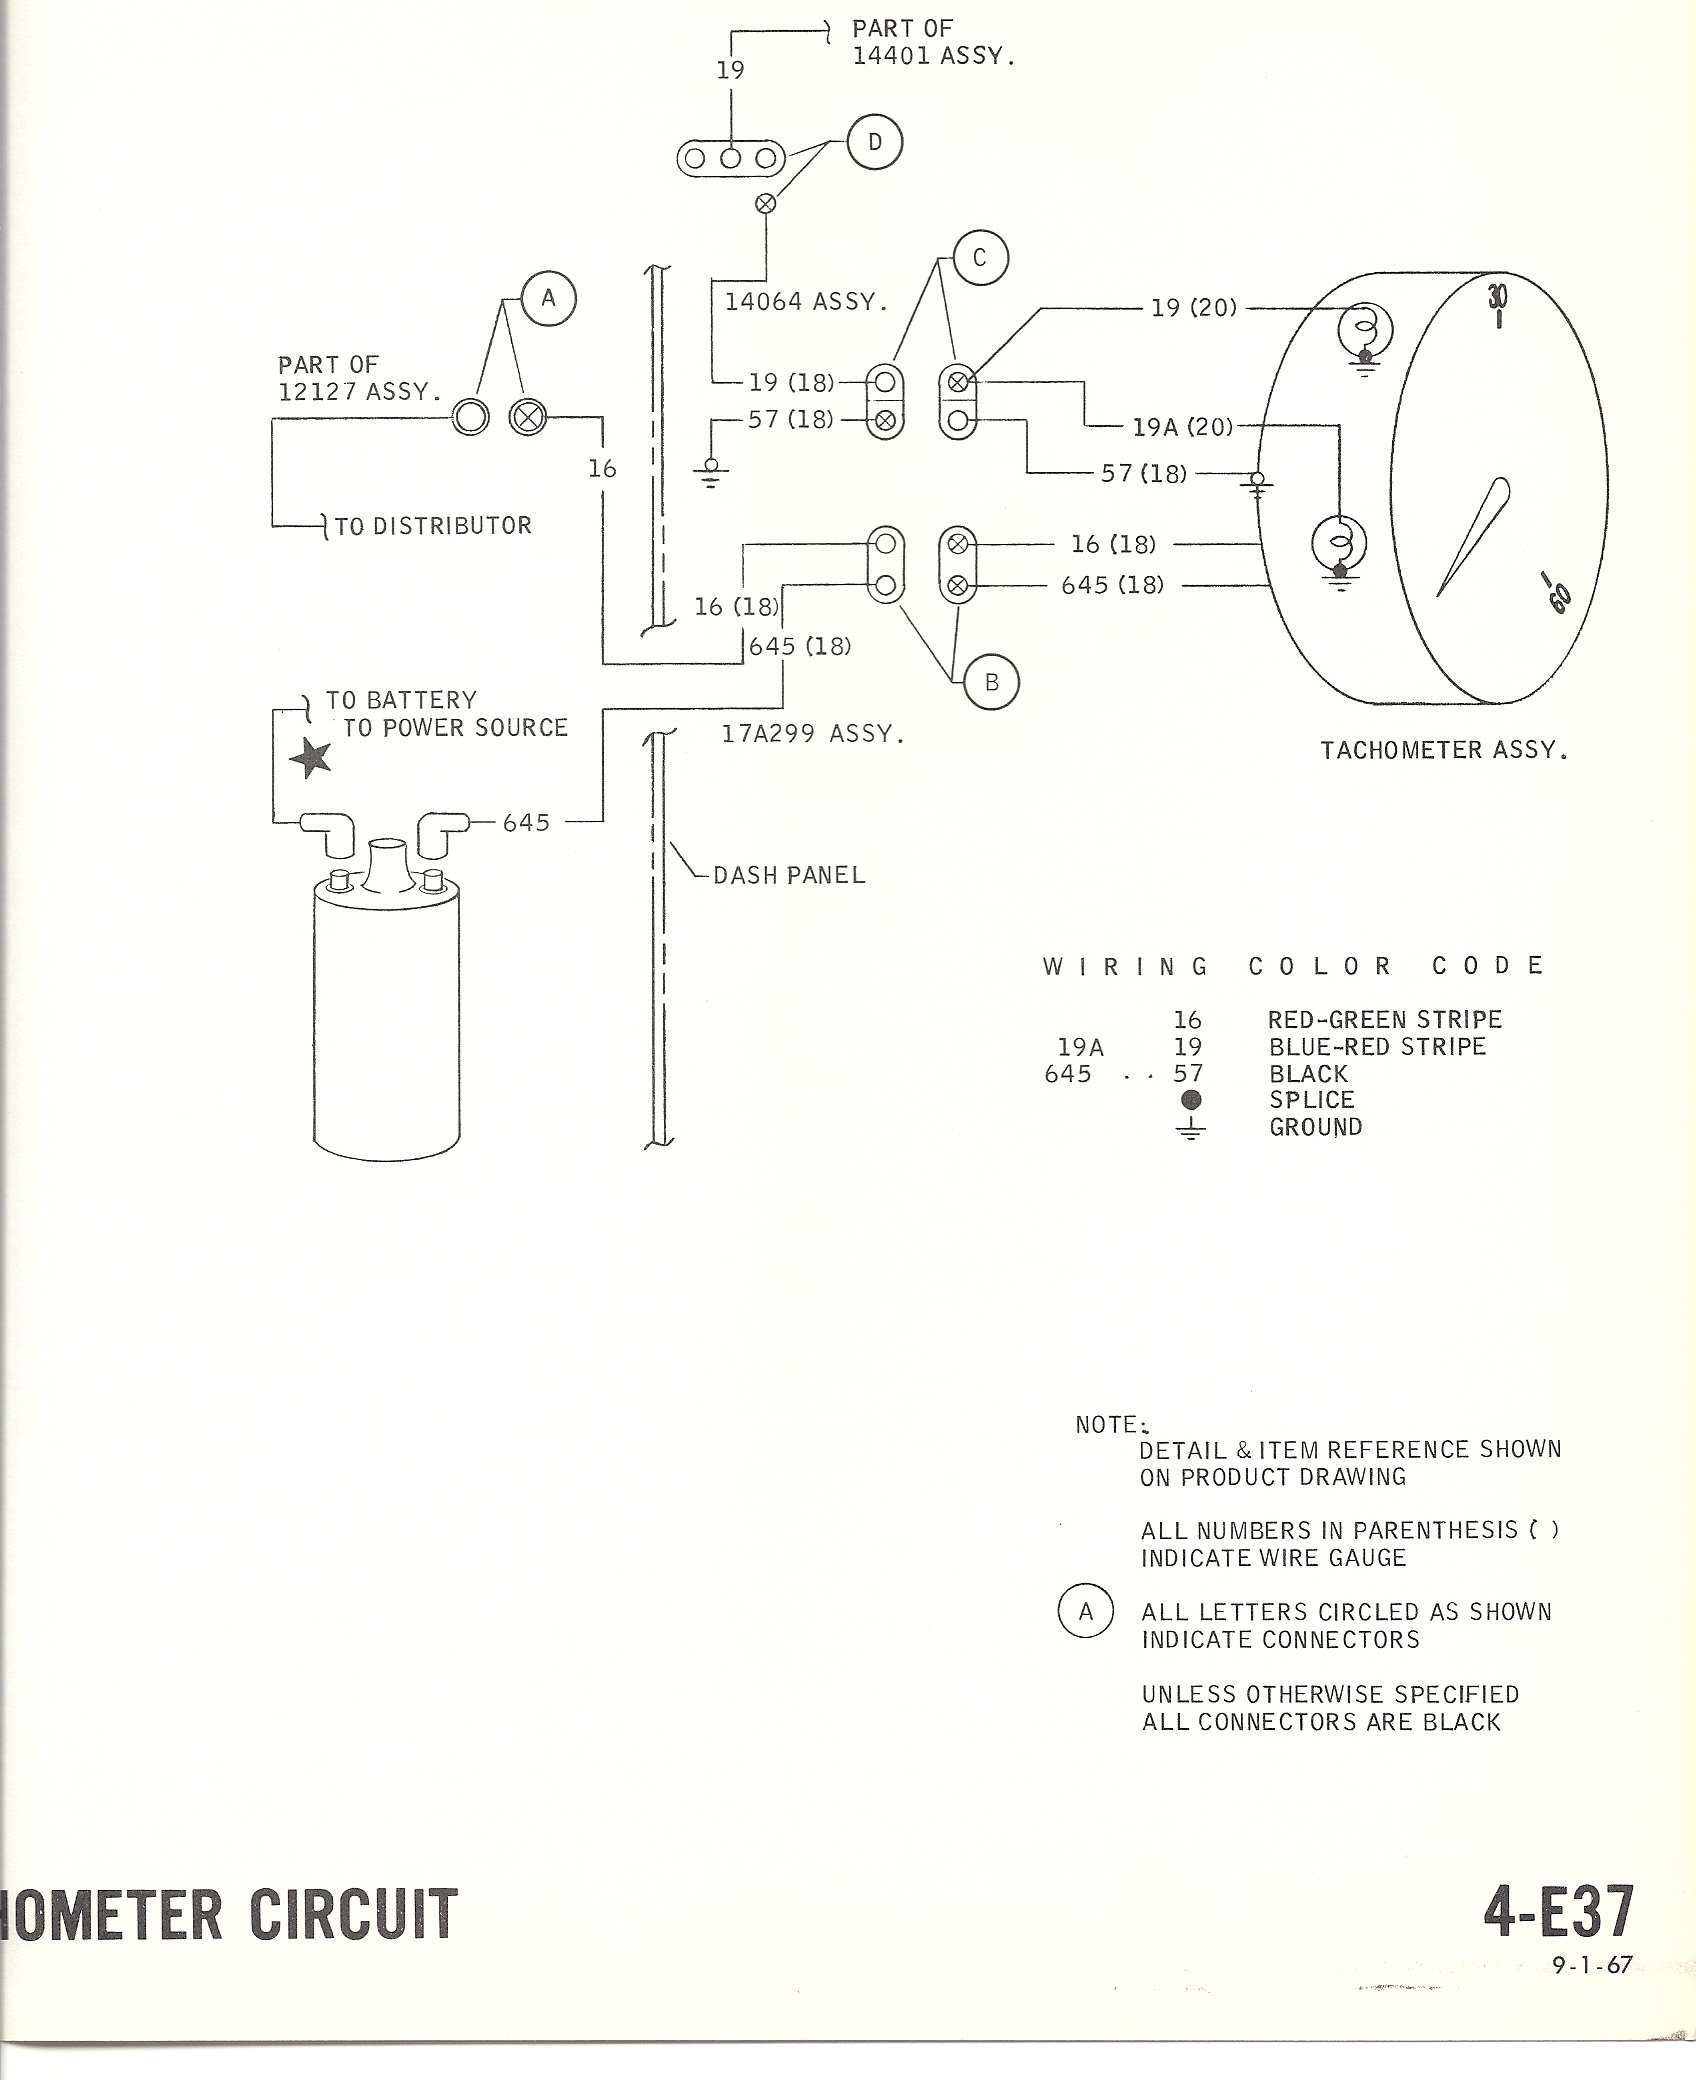 1997 dodge dakota tach wiring diagram club car lights 67 mustang headlight best library 1968 diagrams with please help ford forum 1970